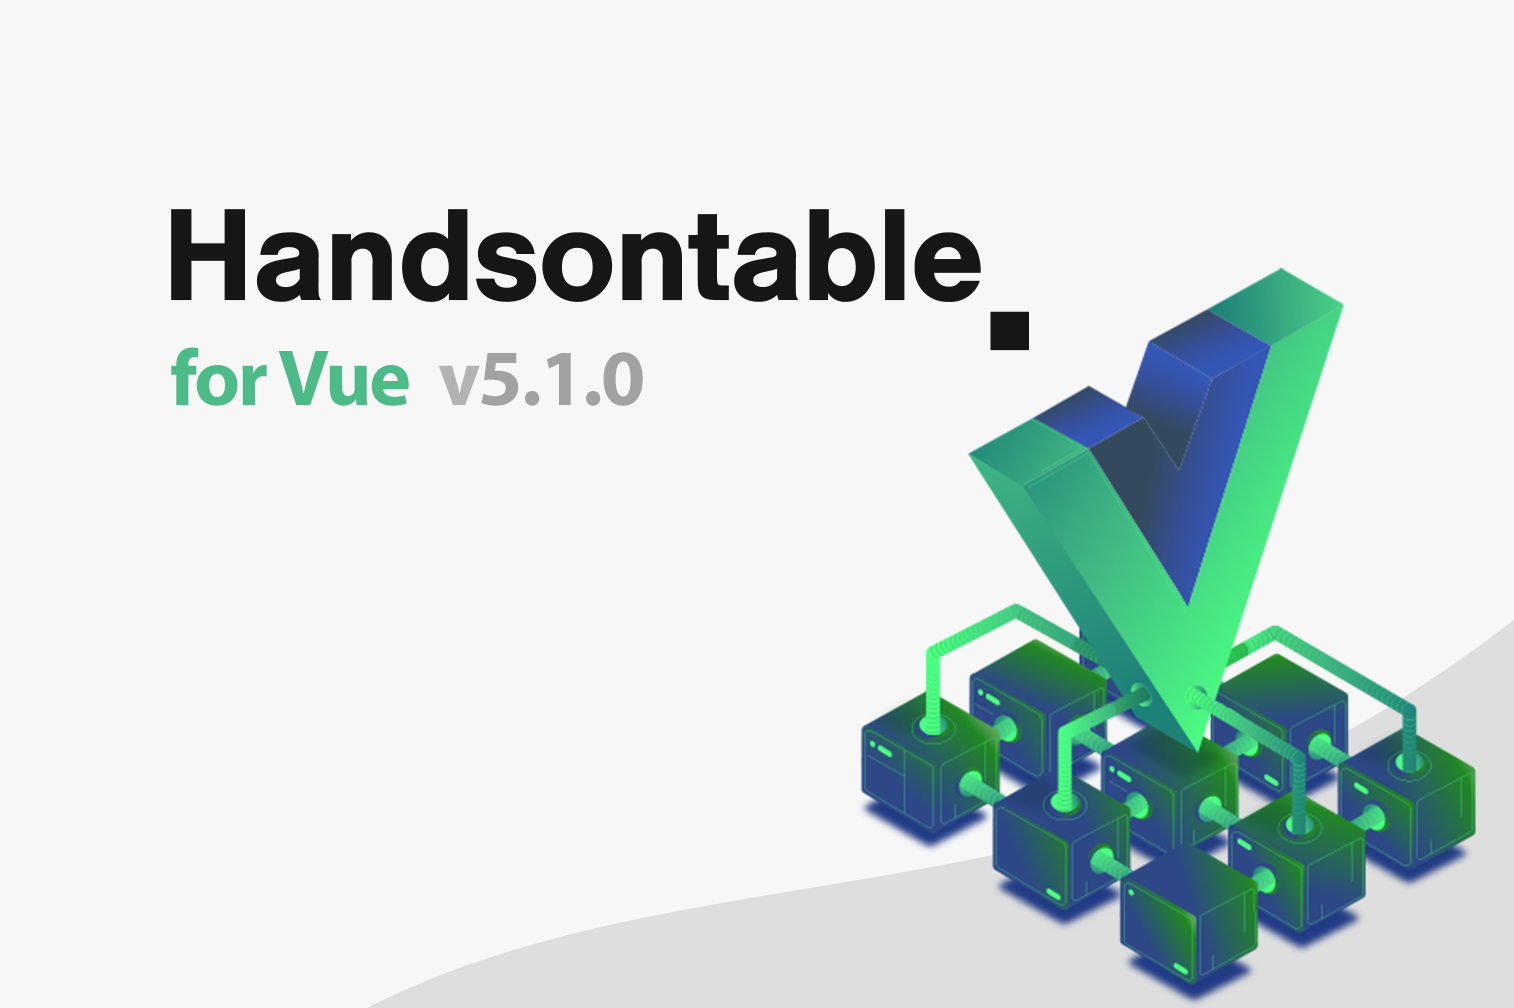 Handsontable for Vue is now 5.1.0